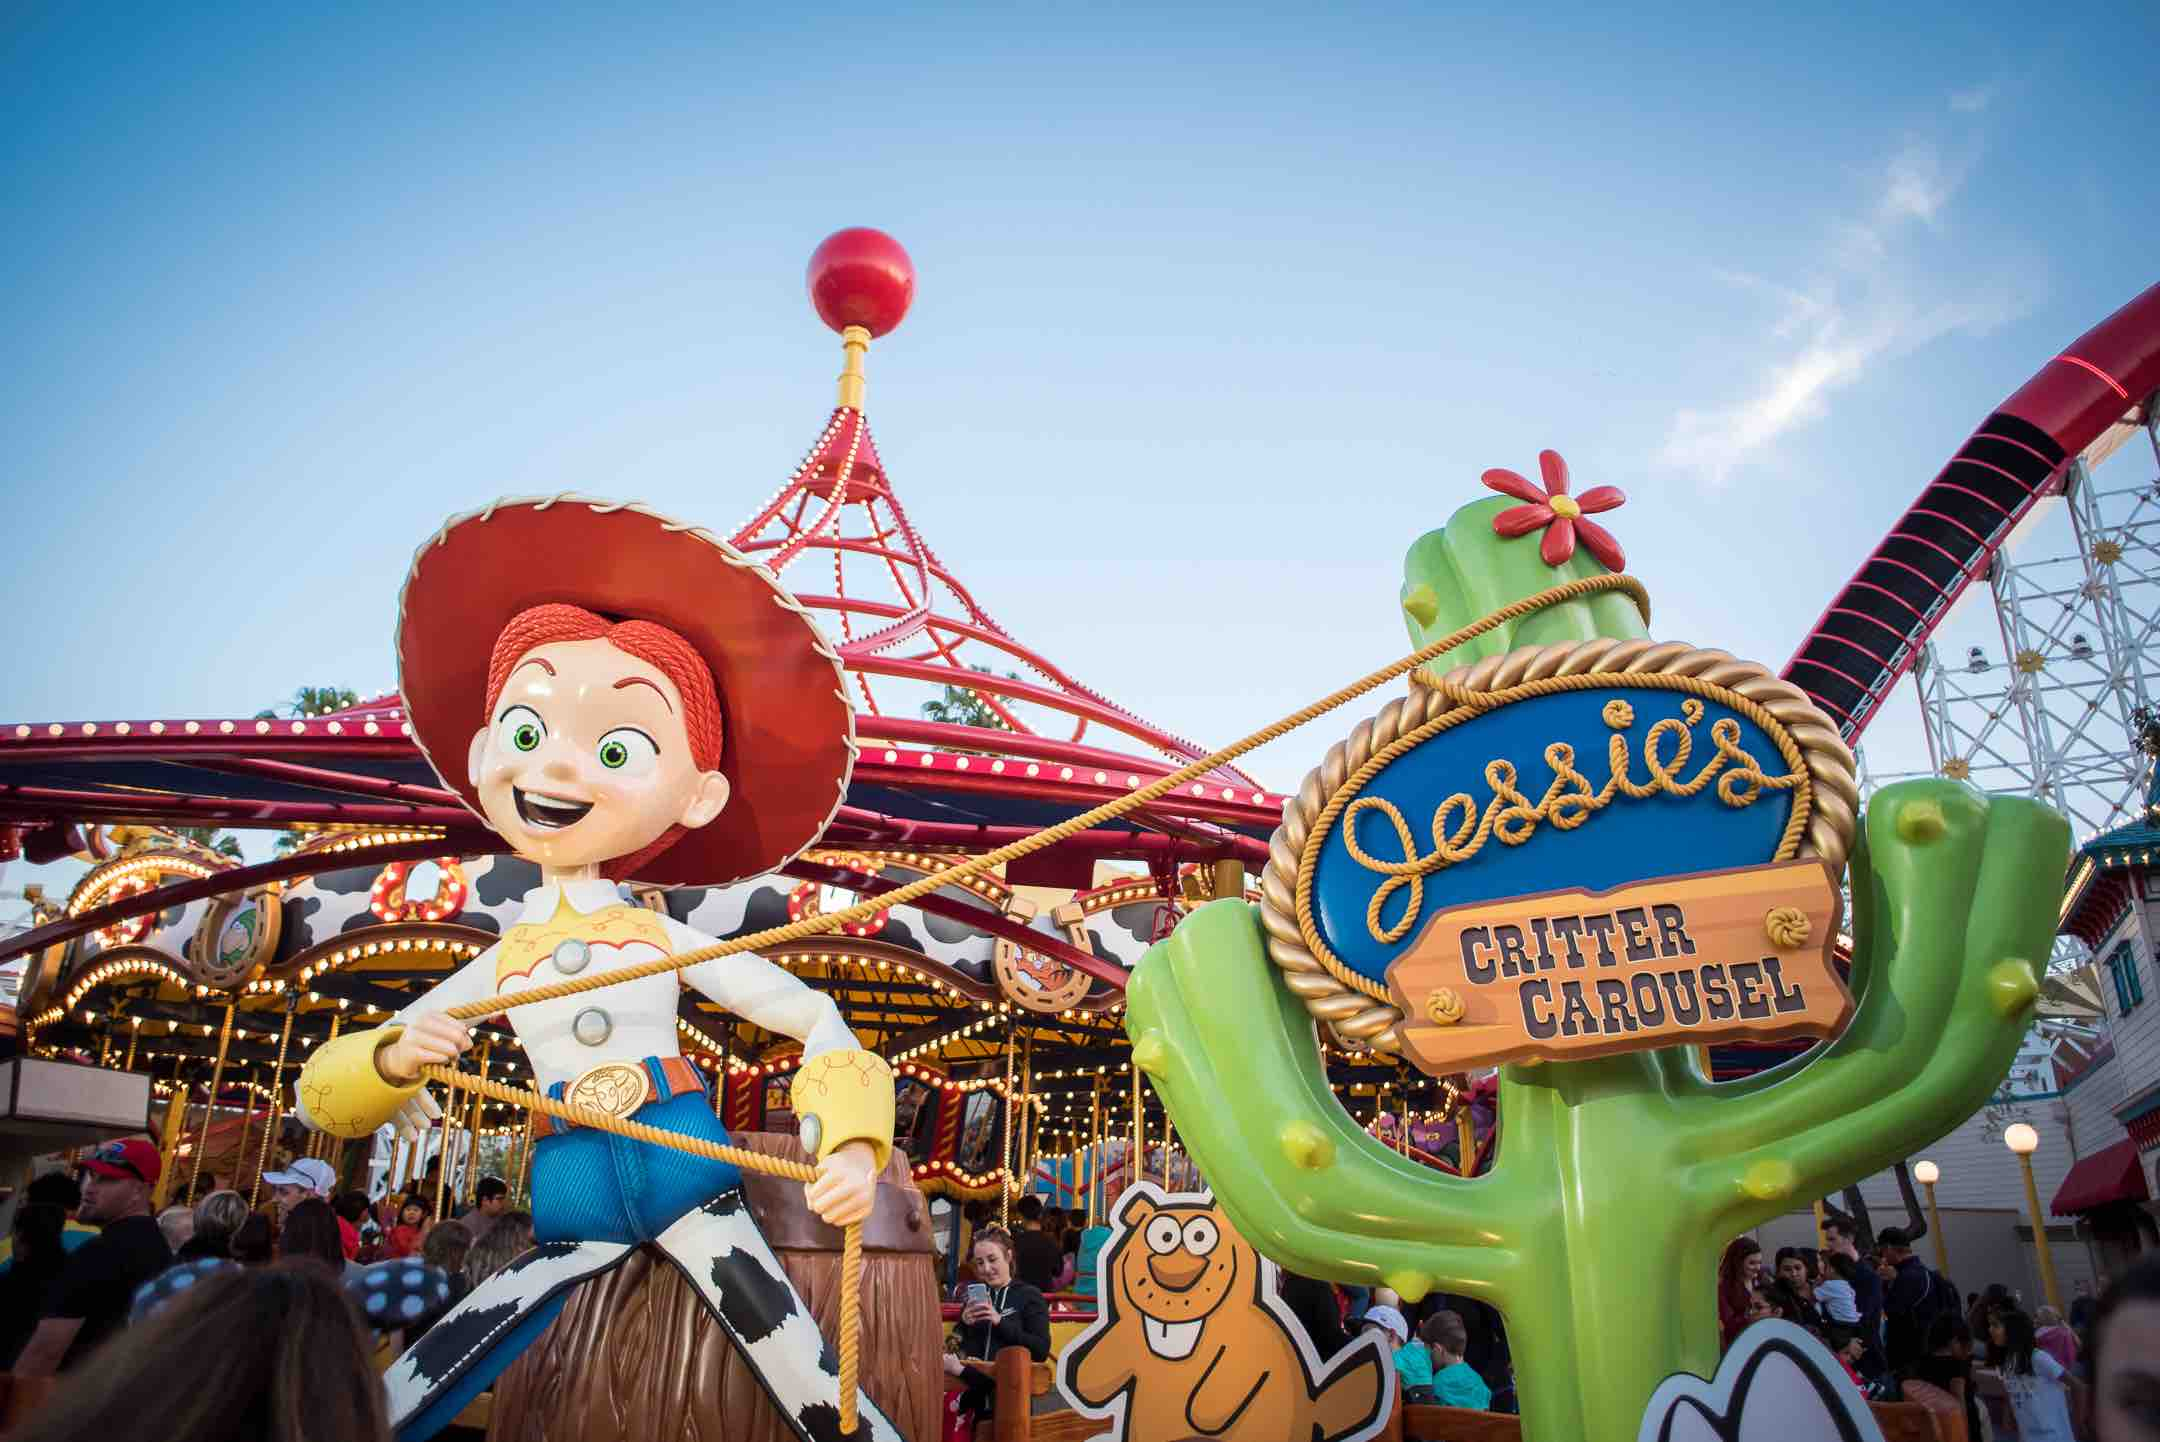 How Many Days Do you Need at Disneyland? Tips featured by top US Disney blogger, Marcie and the Mouse: Jessie's Critter Carousel is a newer attraction on Pixar Pier at Disney California Adventure